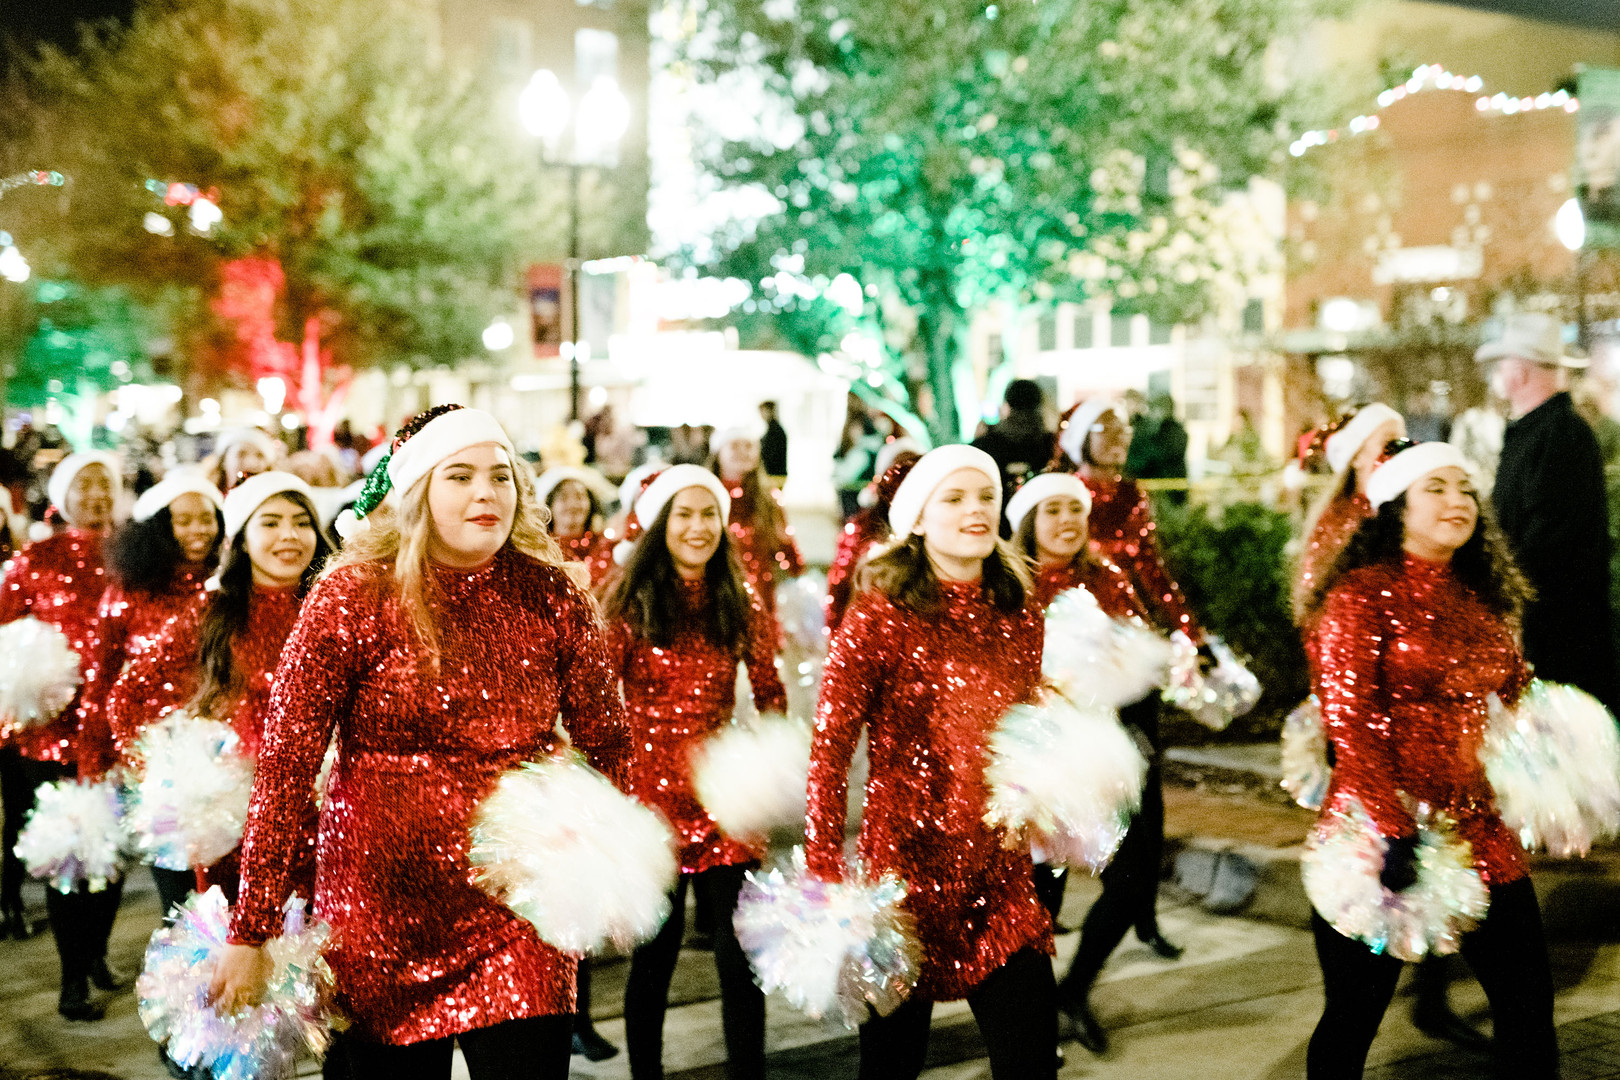 Downtown-Bryan-Christmas-Parade-2018-25.